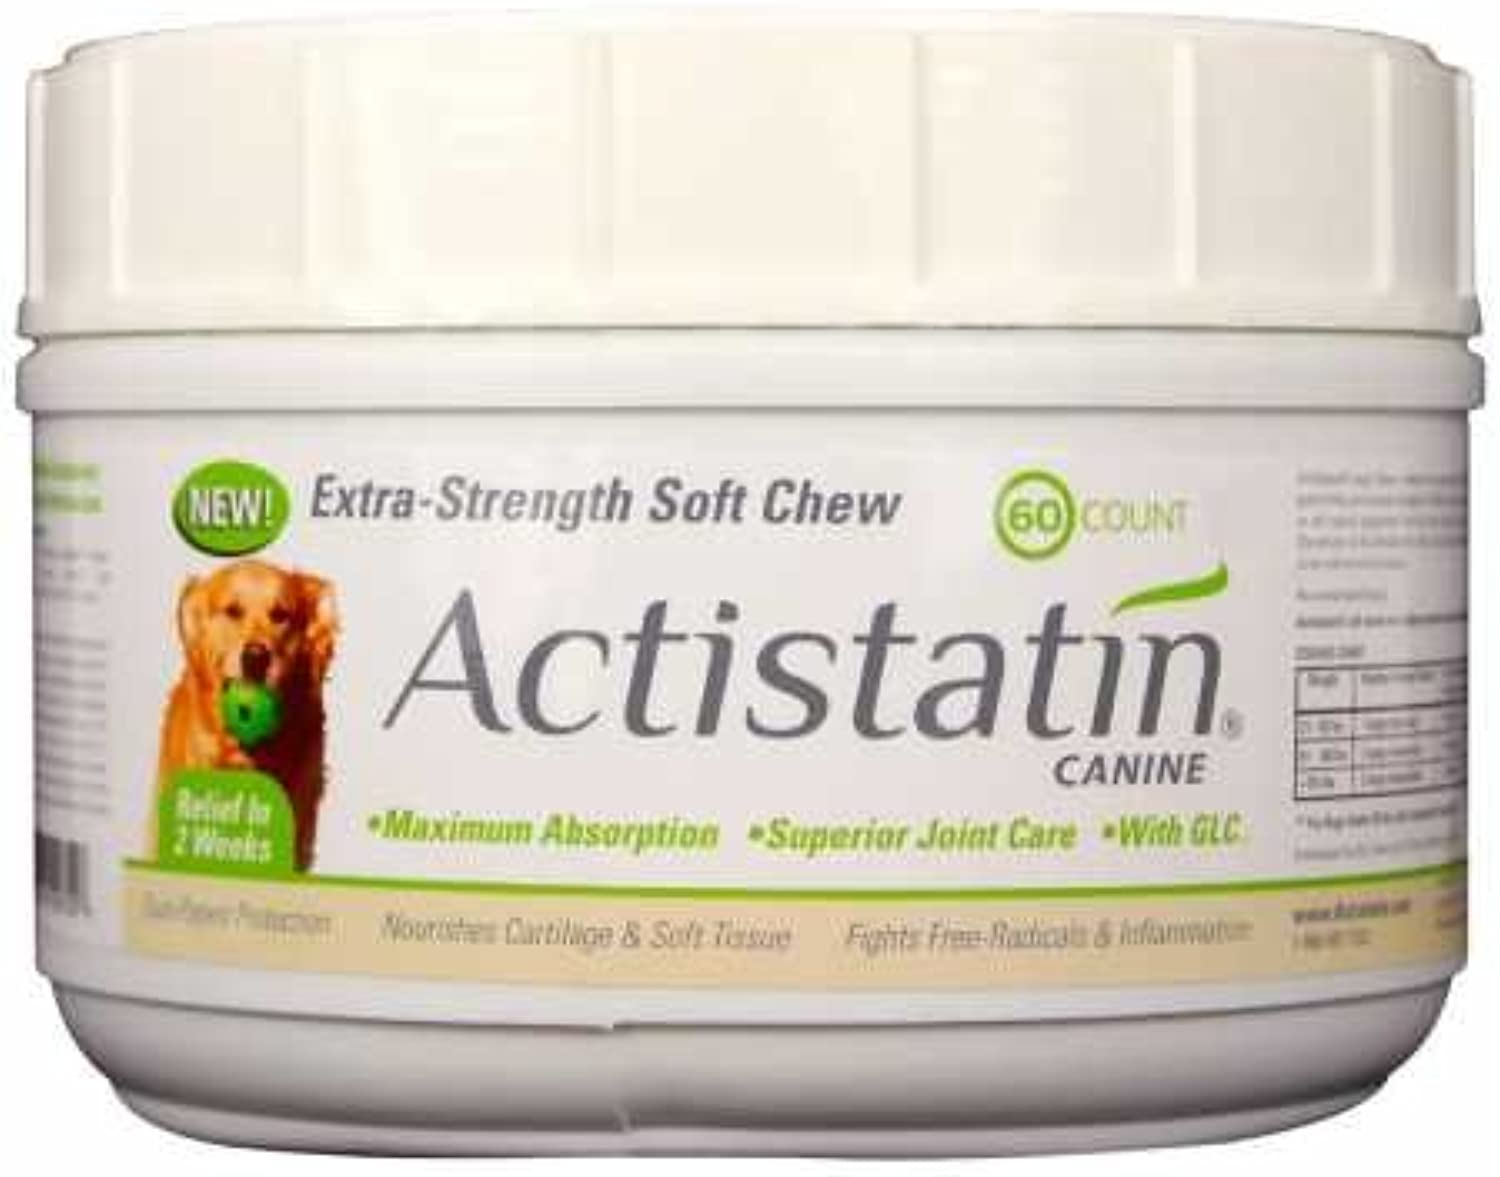 Actistatin Canine Large Dog Soft Chews, 60ct – Patented ExtraStrength Joint, Cartilage, Soft Tissue Supplement  Glucosamine, Chondroitin, Manganese, MSM, LCarnitine – High Absorption, Fast Results